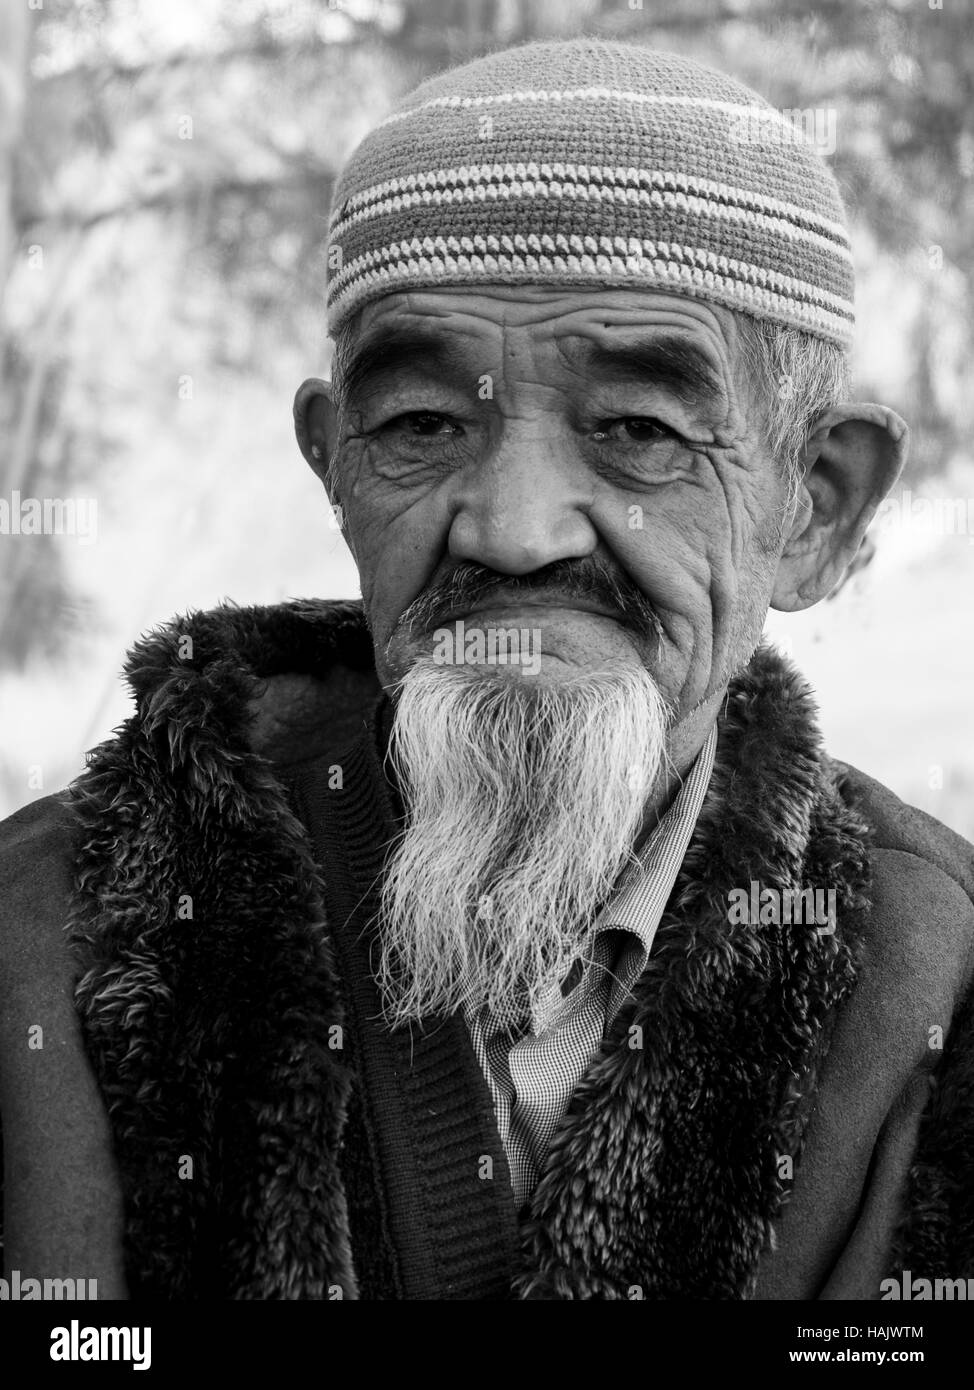 A bearded Kyrgyz old man poses serious for a portrait - Stock Image